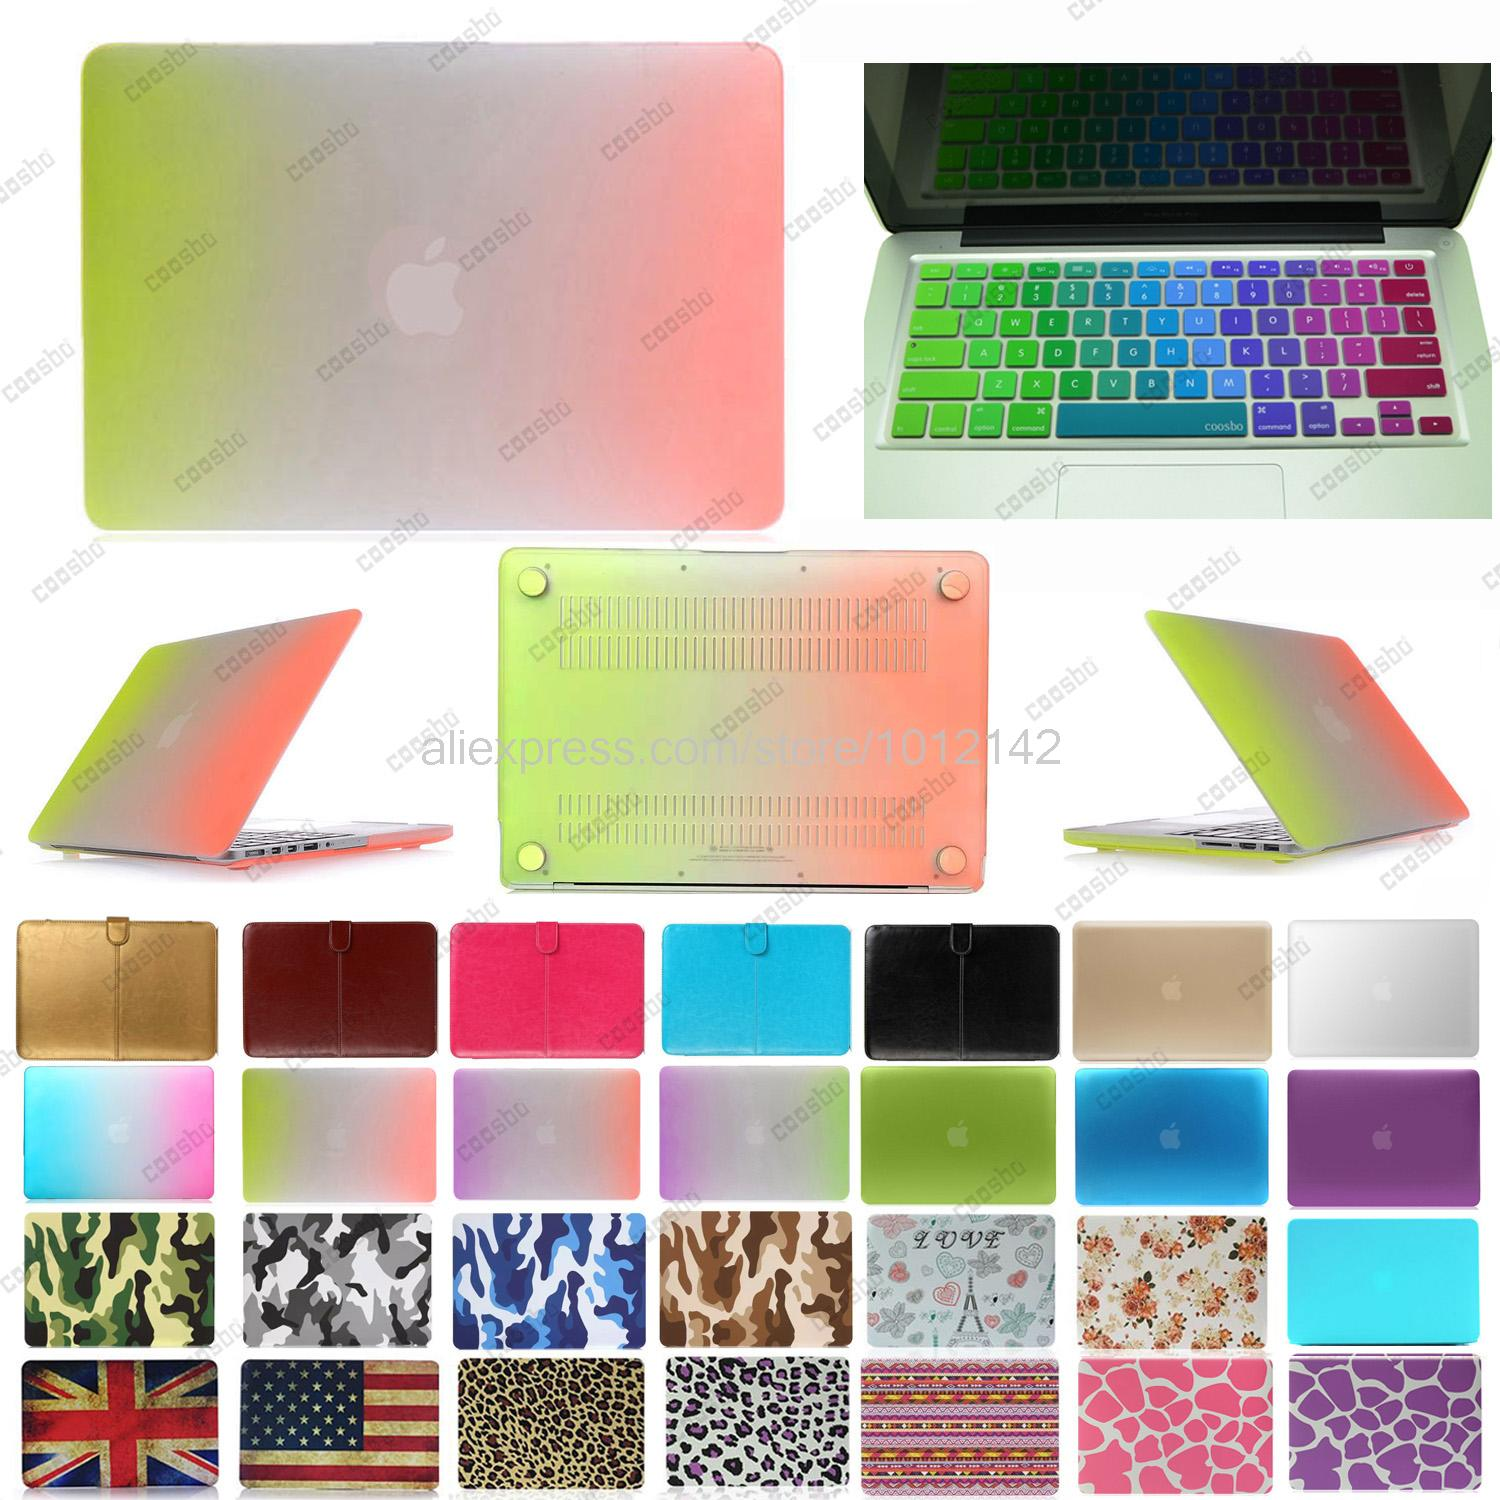 2in1 freeship colorful Hard Case shell For mac Macbook Air Pro Retina 13 15 + Italy Italian Keyboard Skin Cover